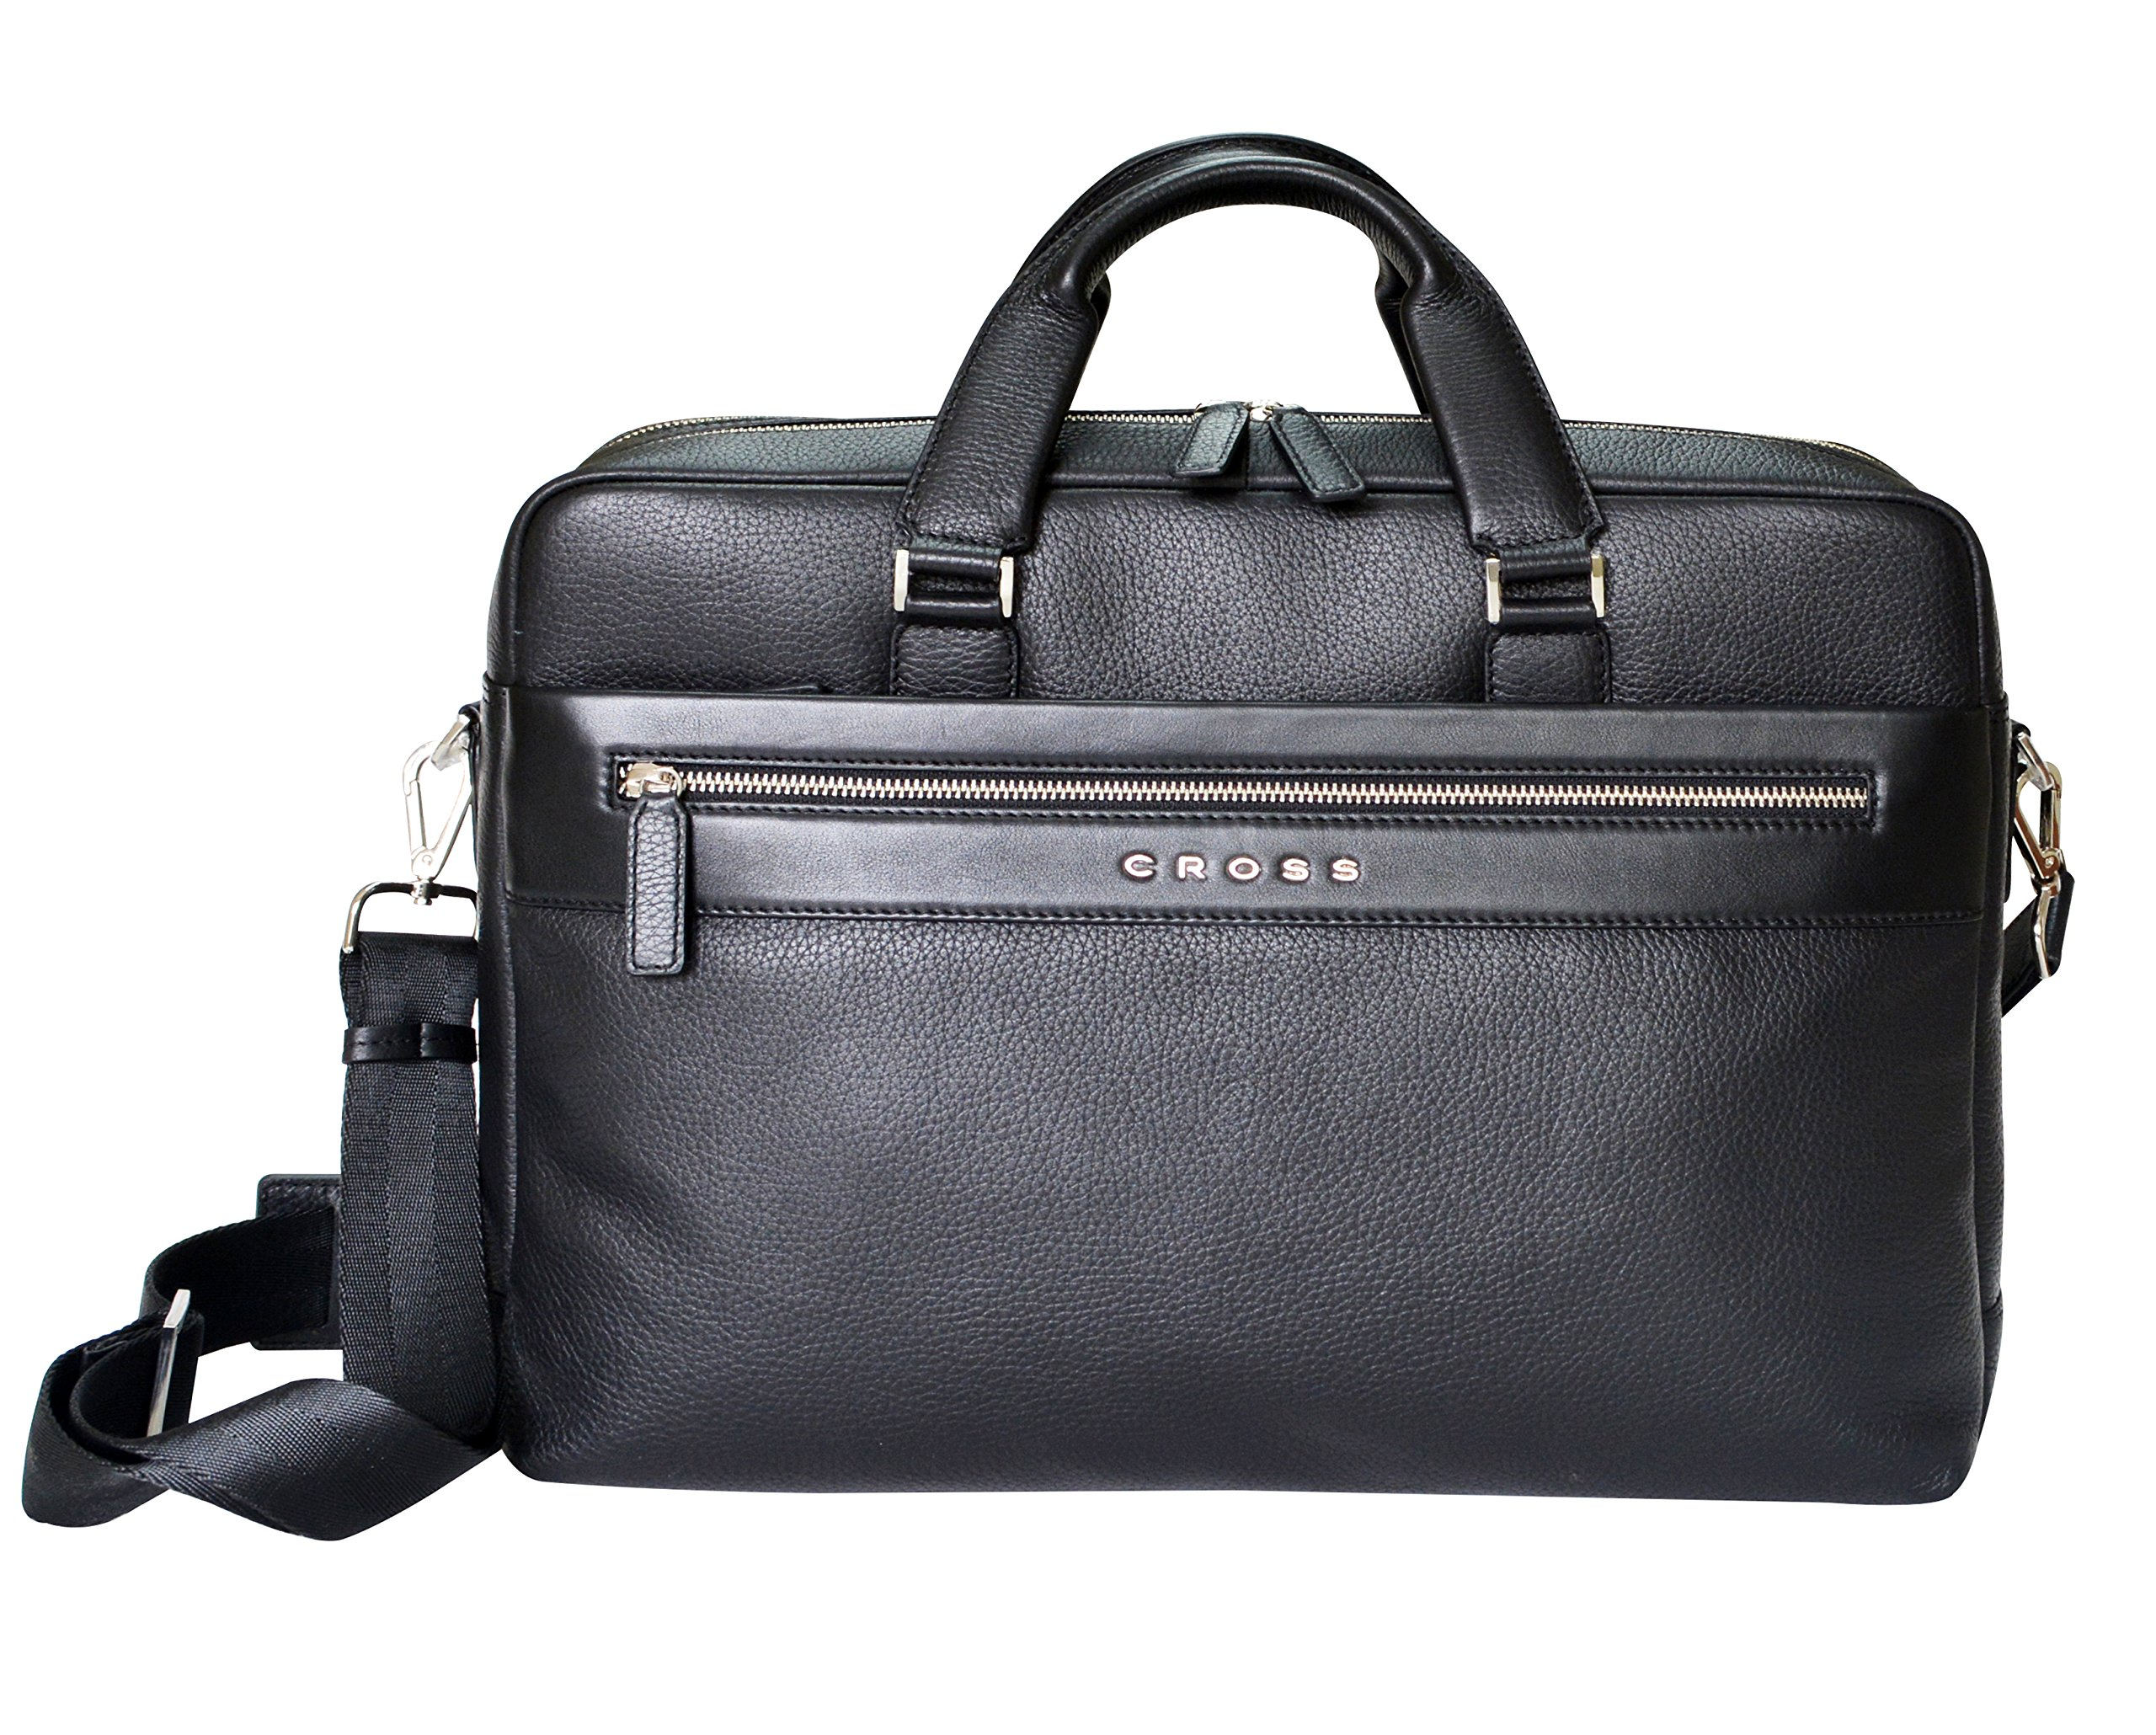 Cross Men's Artificial Leather Profesonal Weekender / Business Laptop Bag - Black